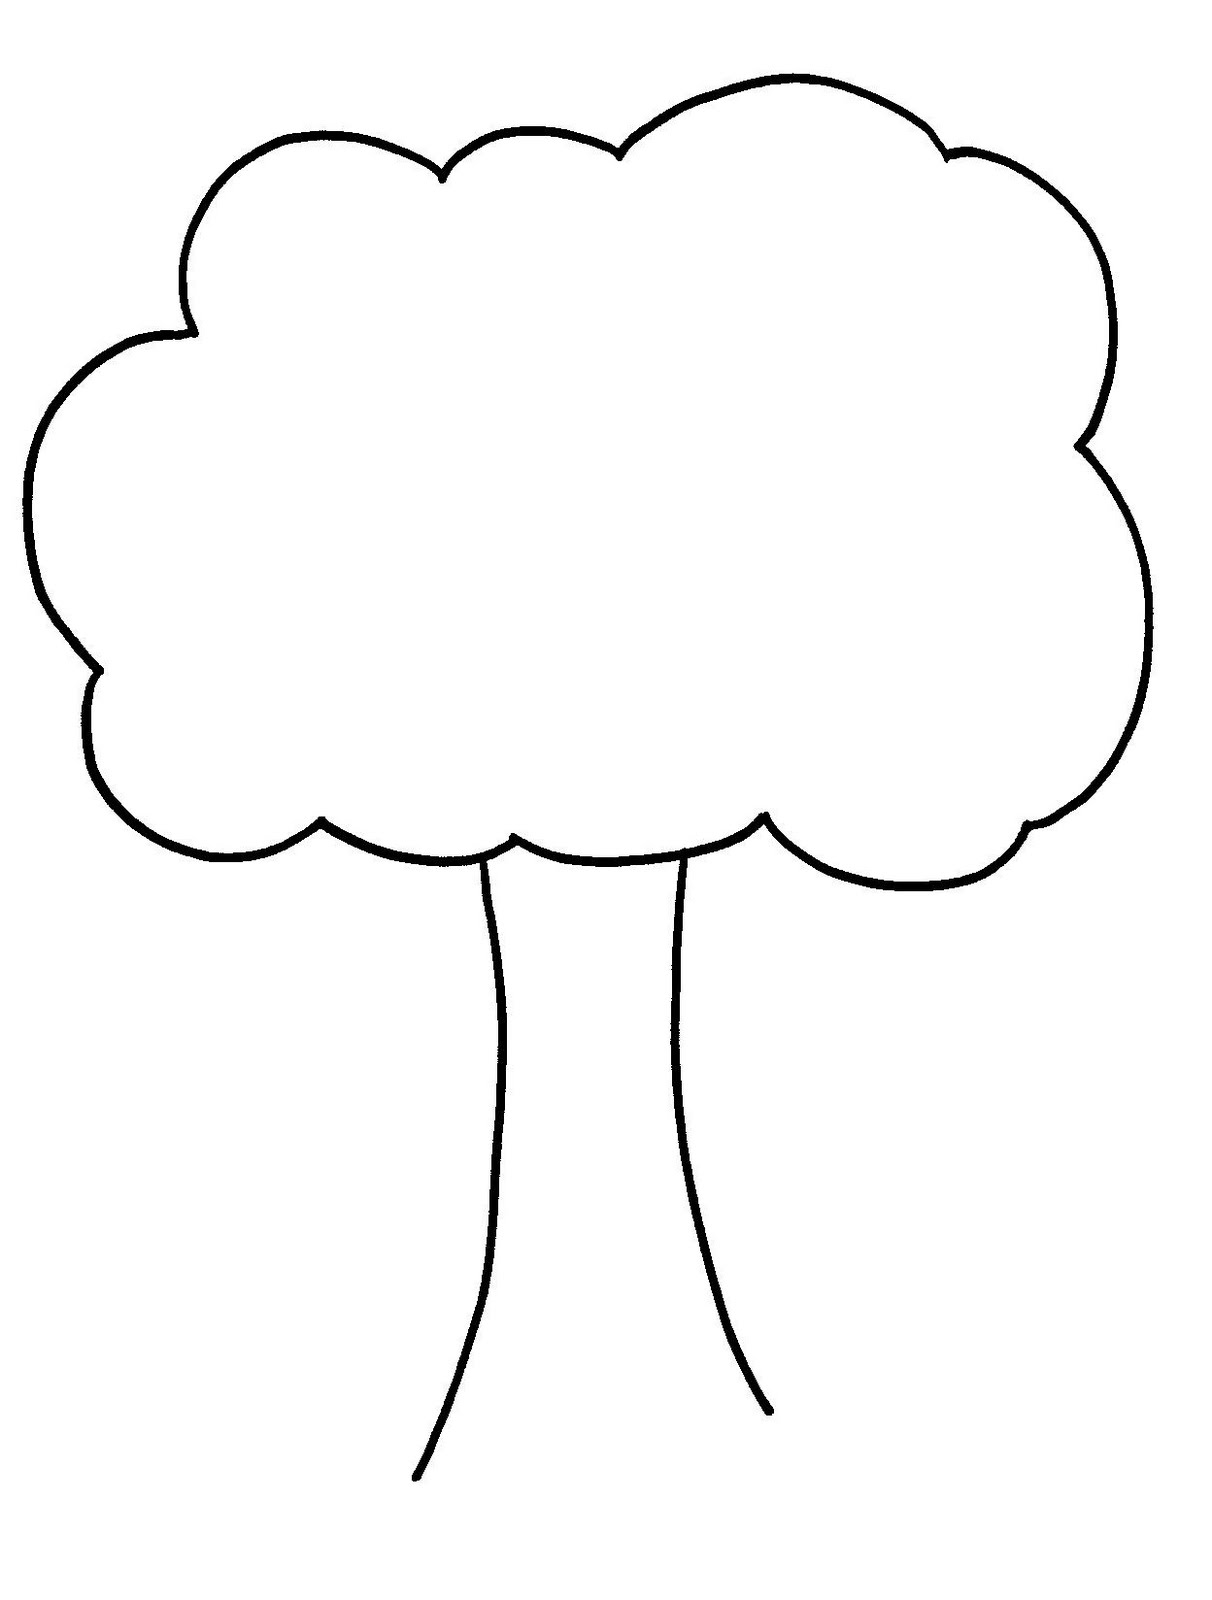 bare tree template bare tree outline background illustrations royalty free bare template tree